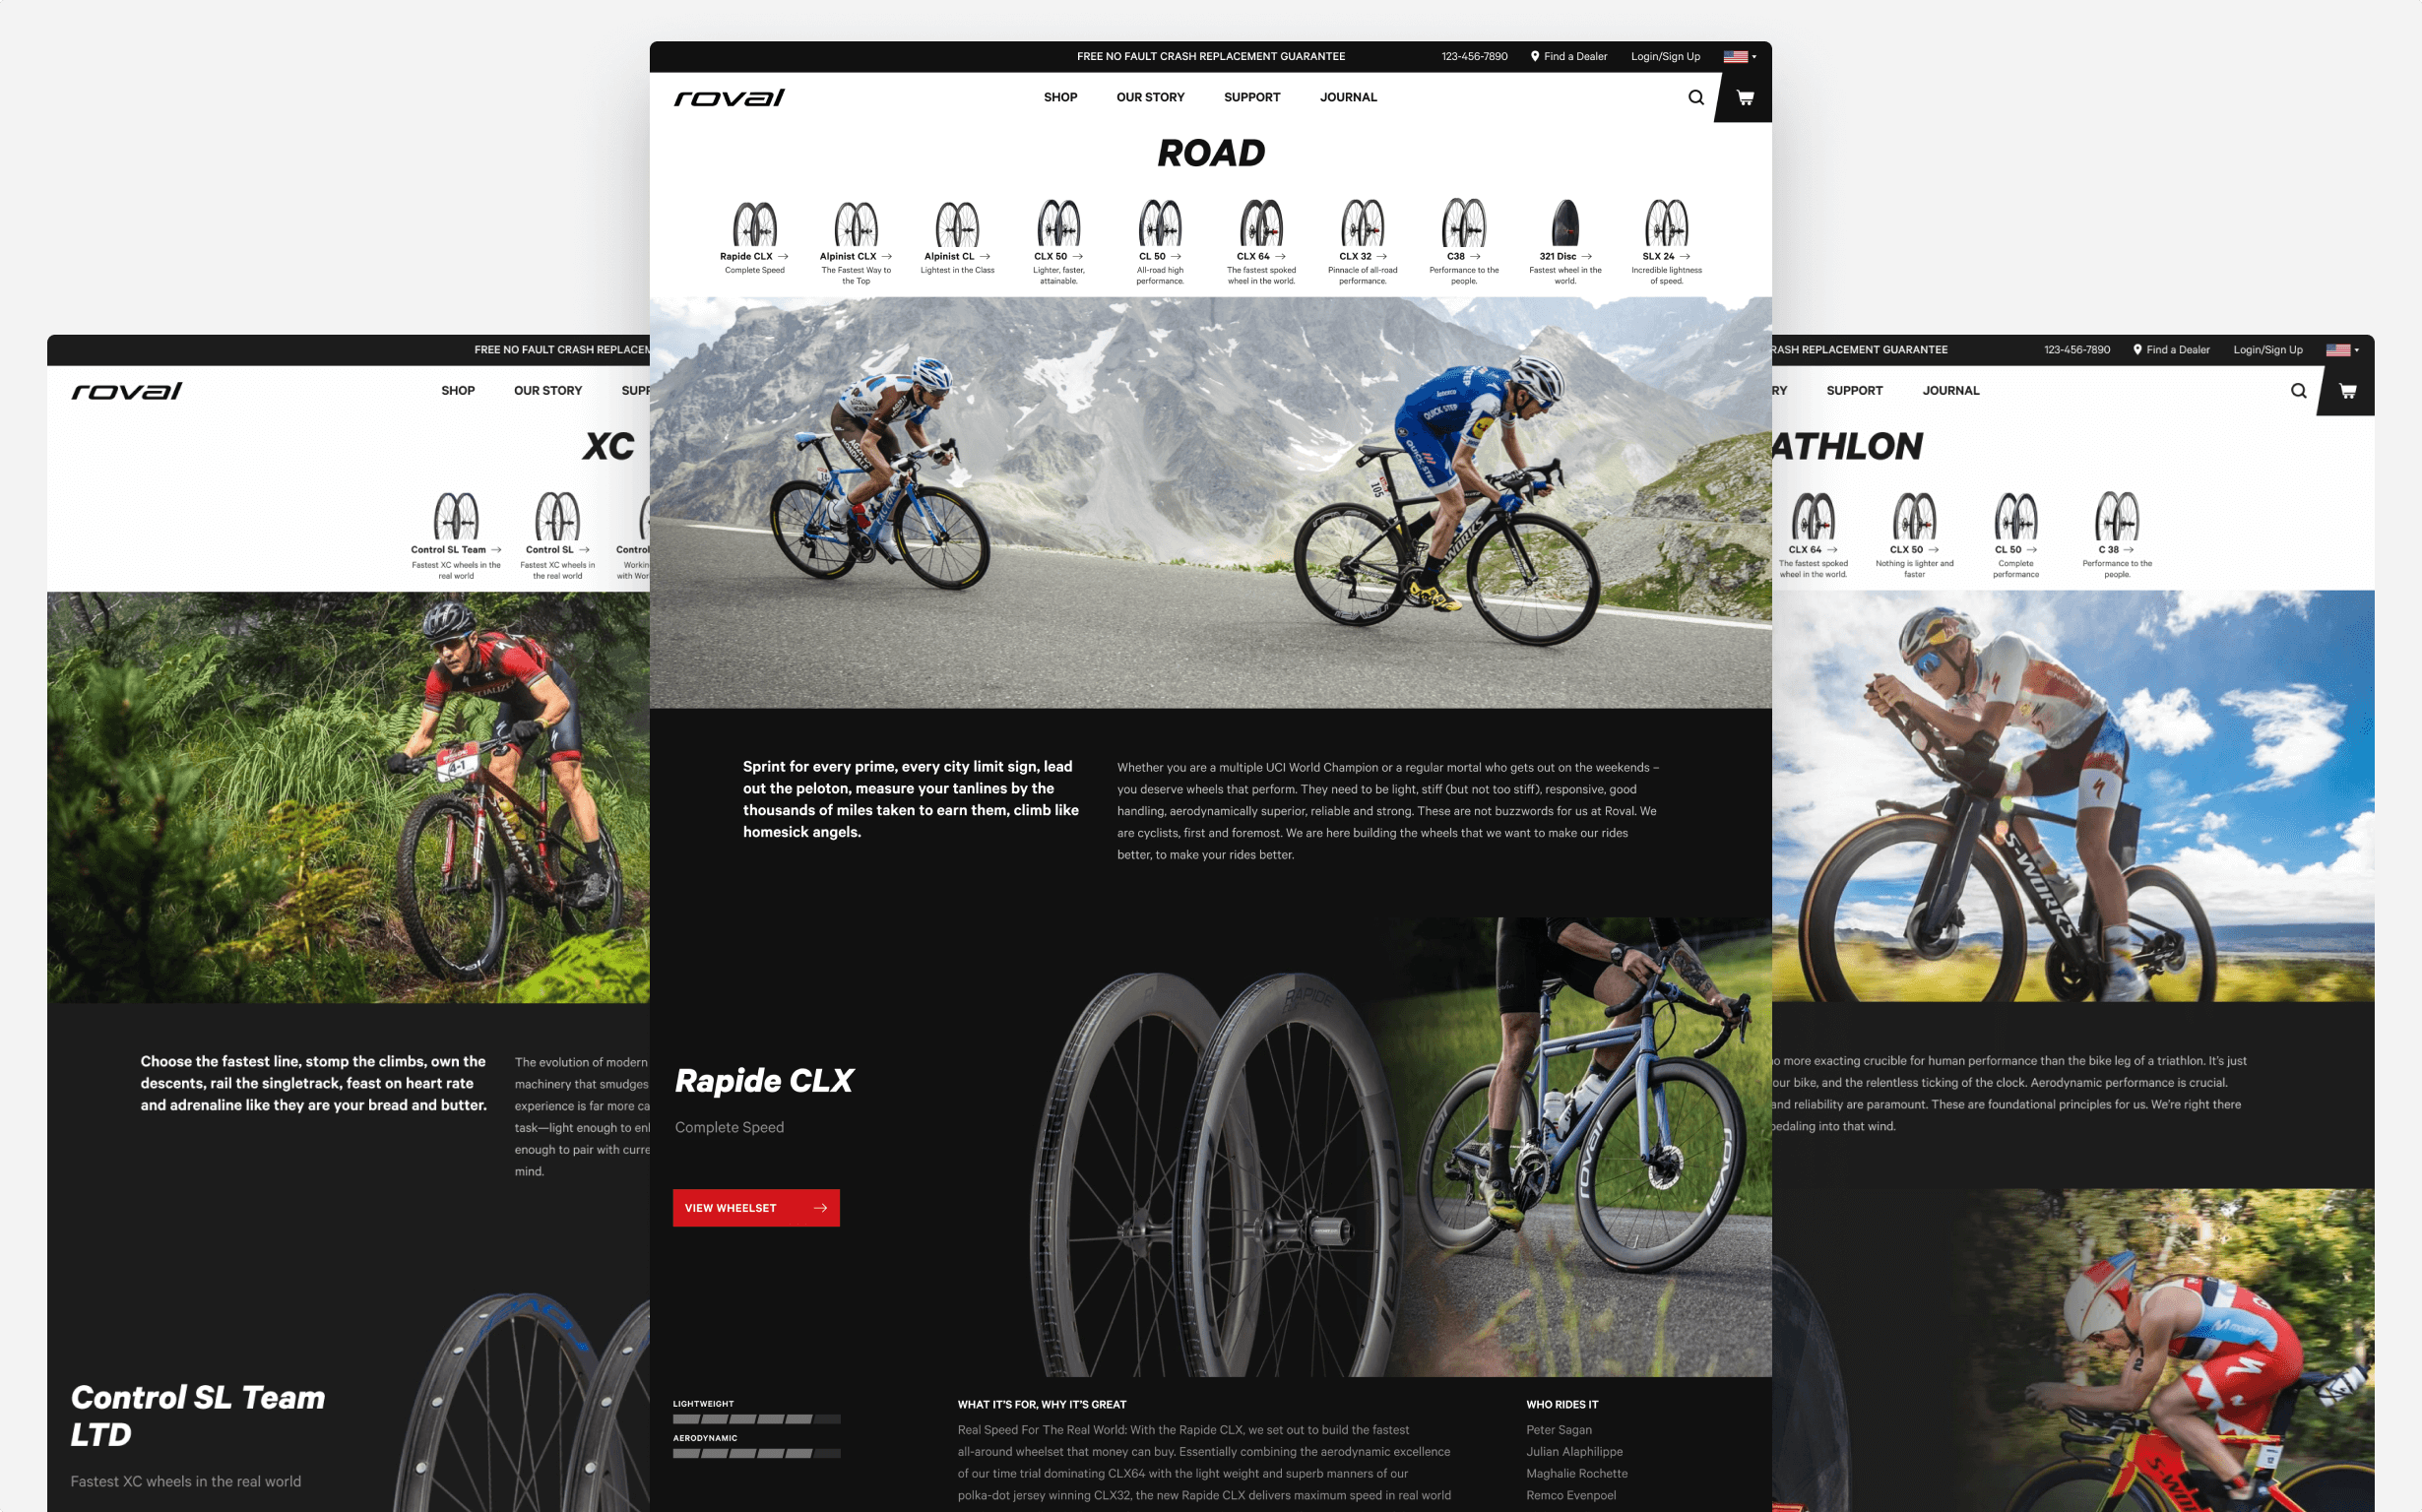 The final design for web pages on Road, XC, and Triathlon wheelsets welcome riders from each discipline.